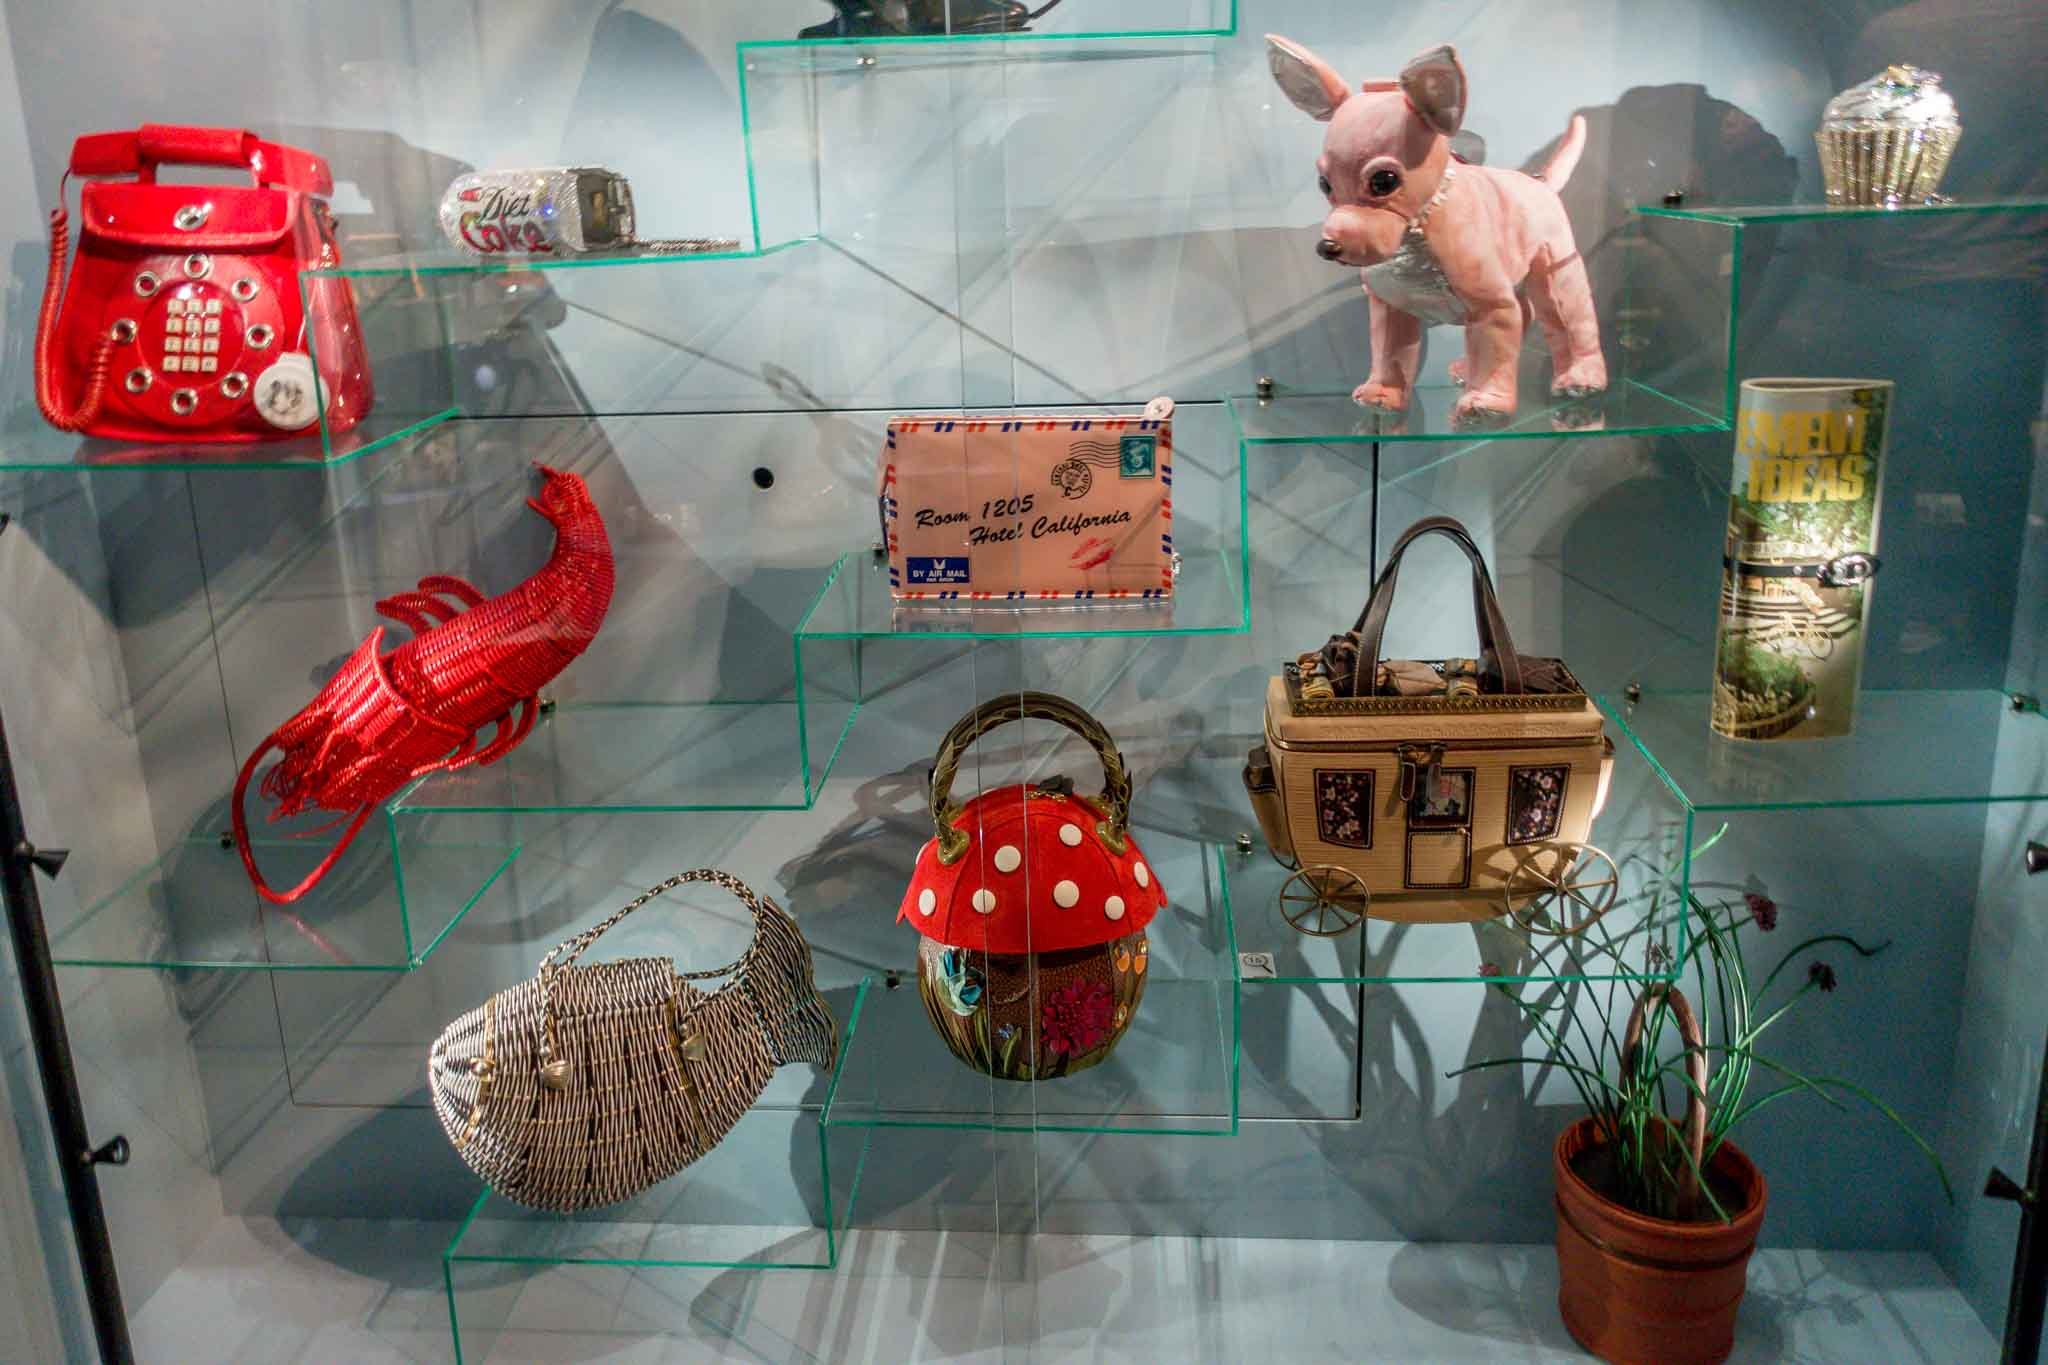 Purses shaped like dogs, lobsters, telephones, and other items